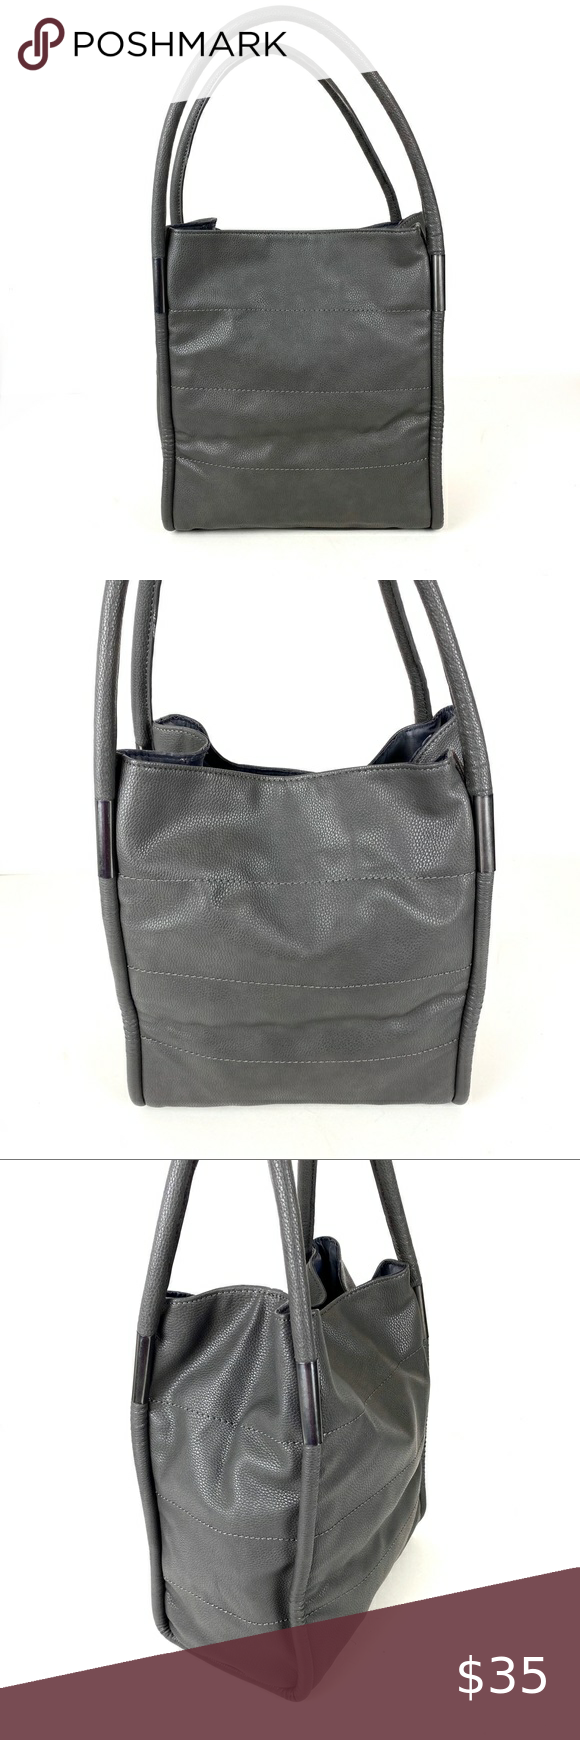 Neiman Marcus Gray Tote Bag Leather In 2020 Tote Bag Leather Grey Tote Bags Grey Tote